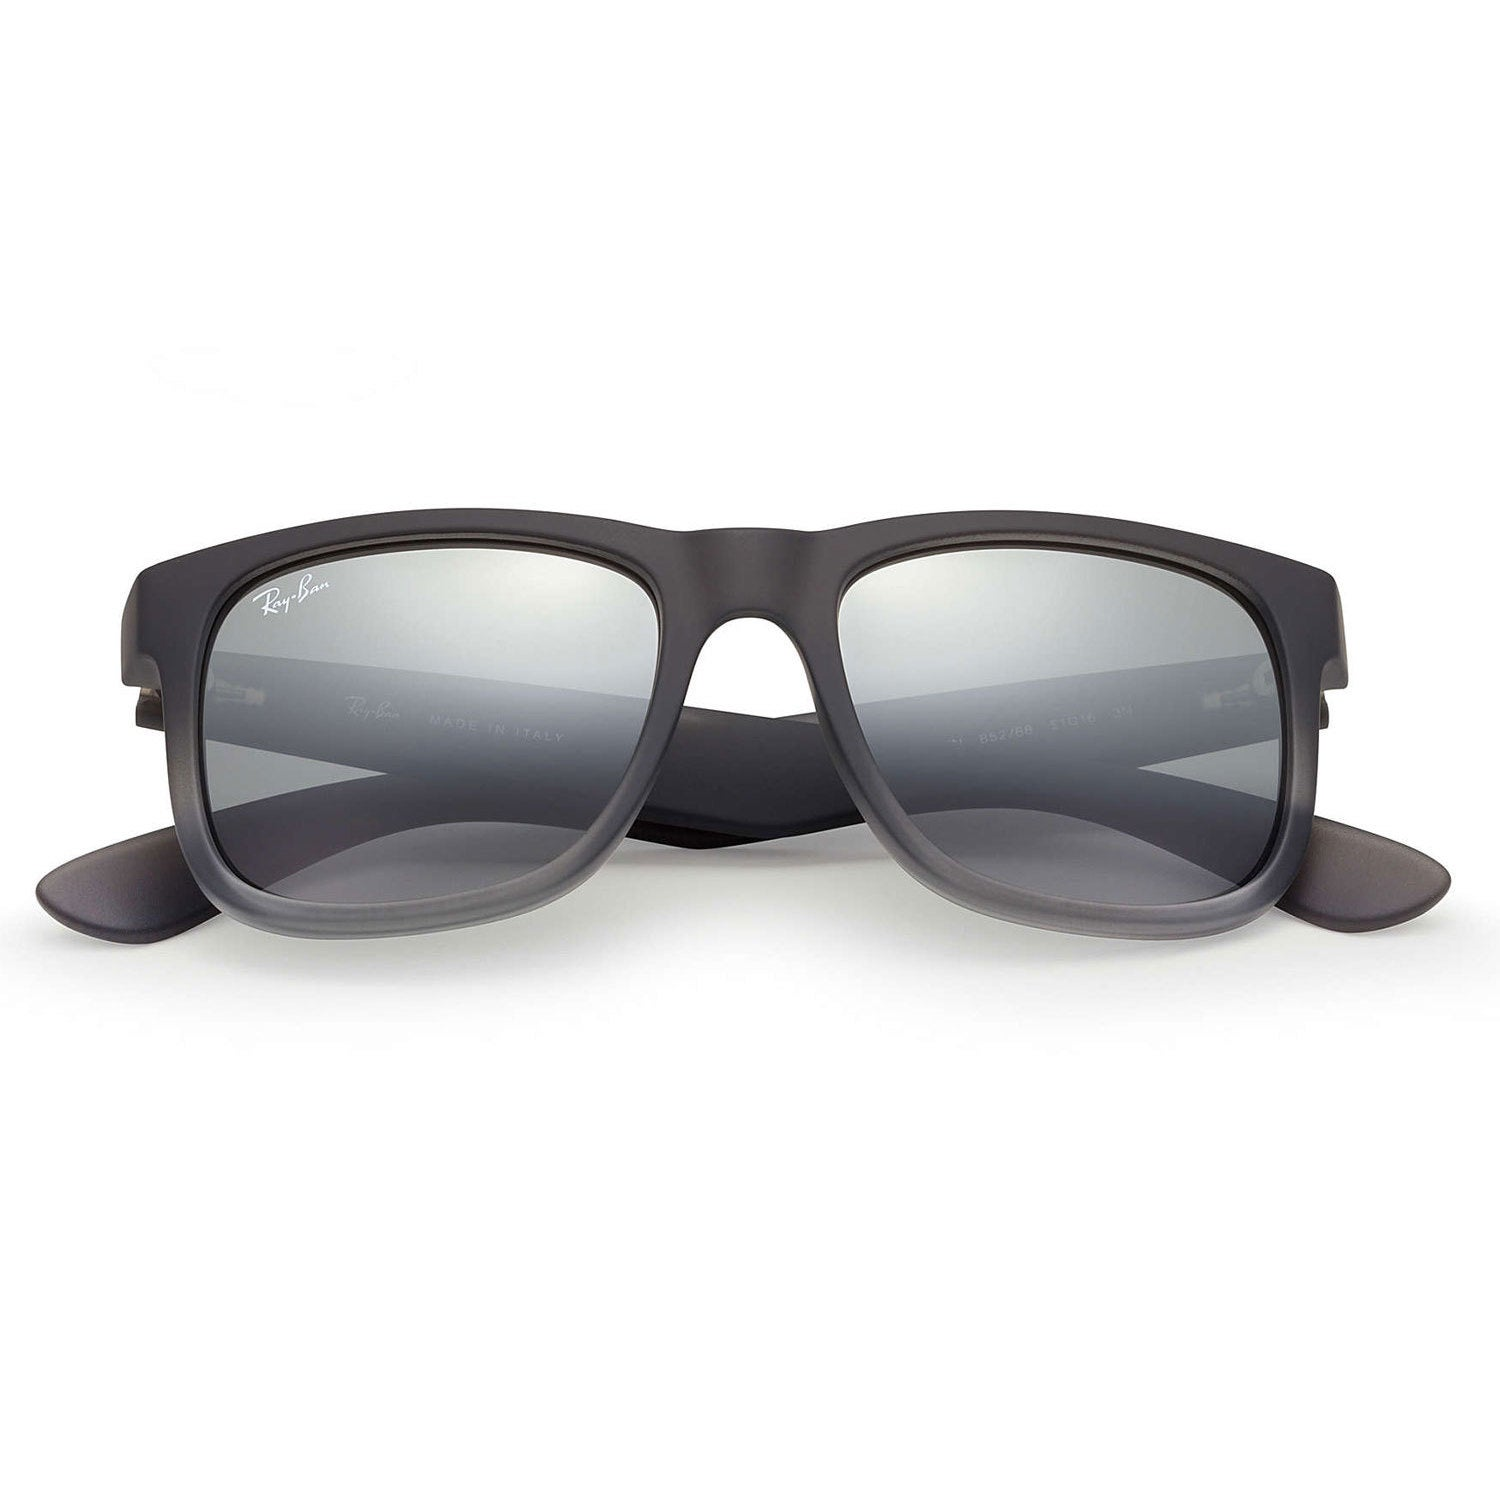 4a33d5857e Shop Ray-Ban Justin Classic RB4165 Men s Matte Grey Frame Silver Gradient Mirror  51mm Lens Sunglasses - Free Shipping Today - Overstock - 15298633